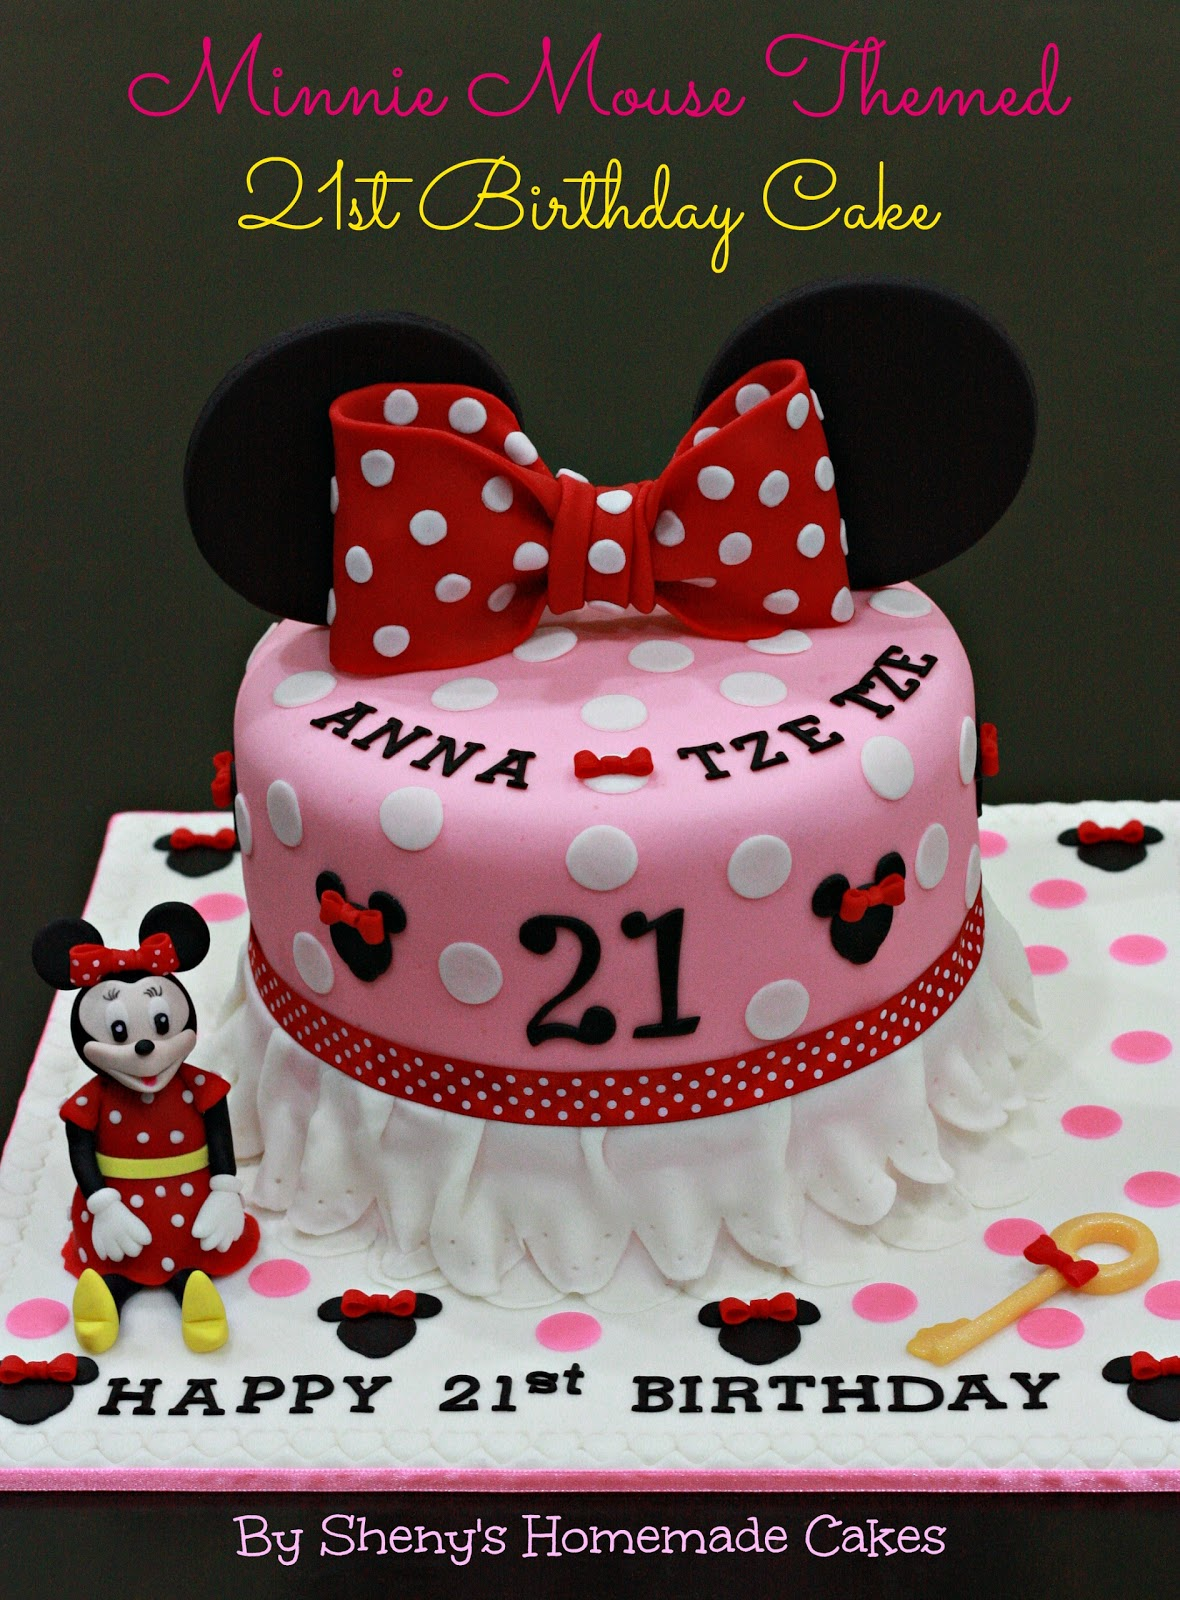 Sheny 39 s homemade treats minnie mouse themed 21st birthday for 21st birthday decoration